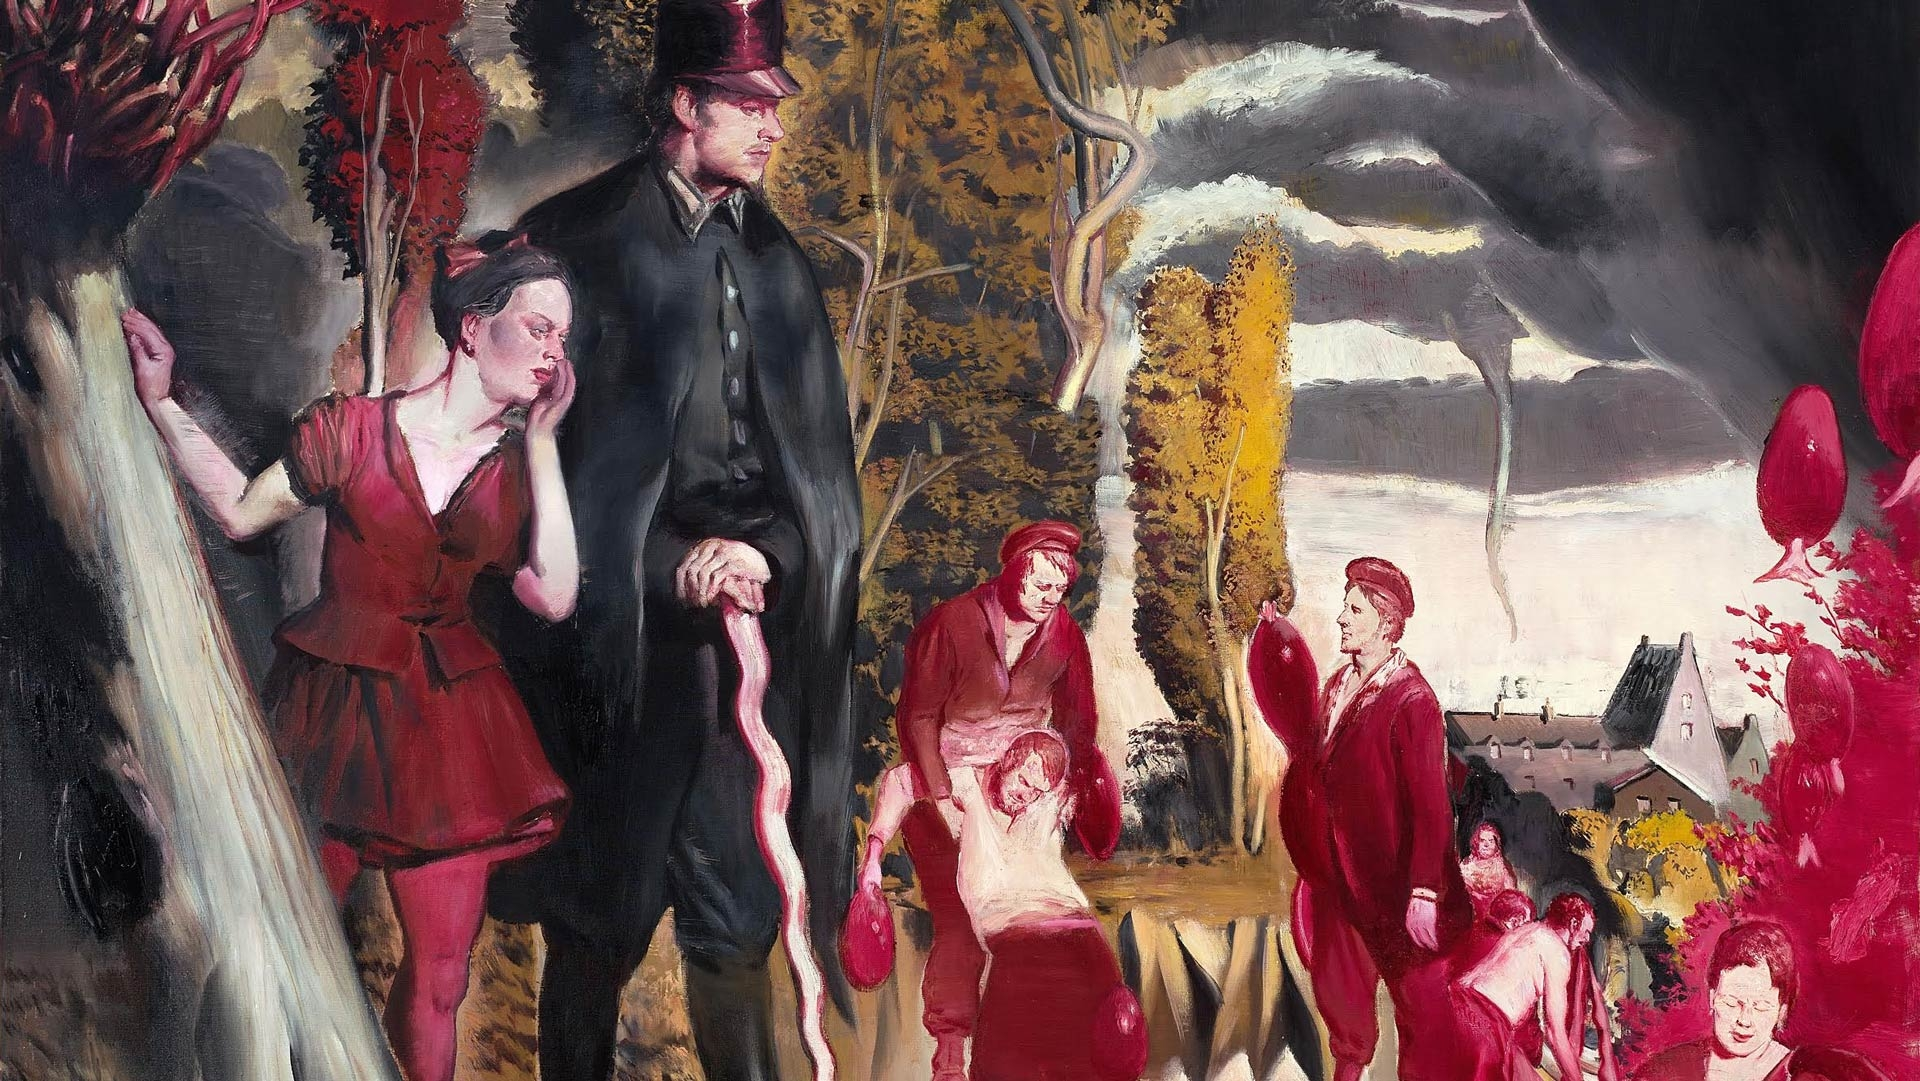 A detail from a painting by Neo Rauch, titled Blutsbrüder, dated 2017.